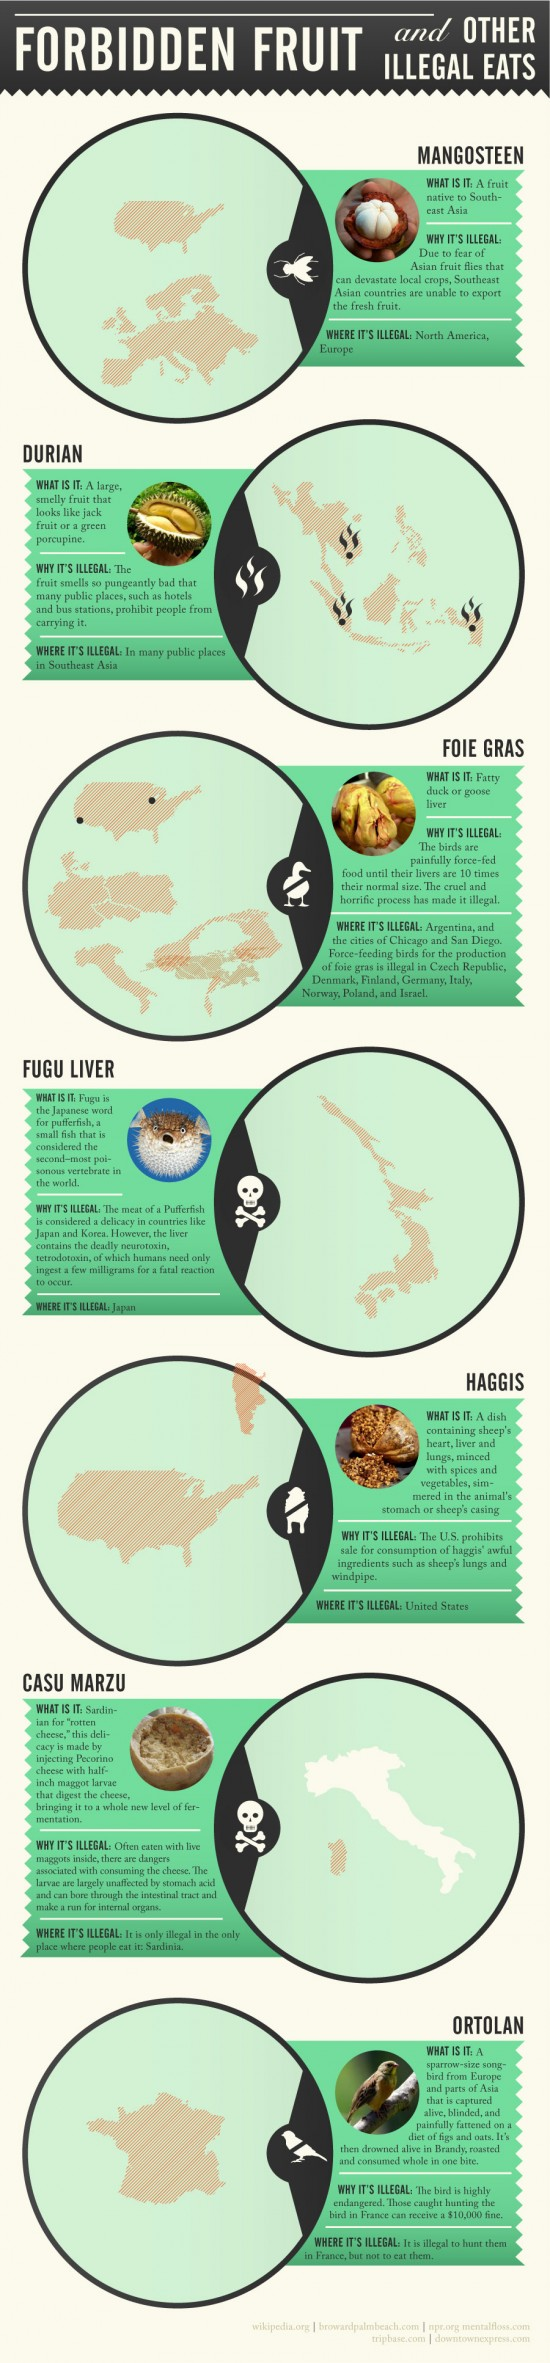 forbidden-fruits-infographic